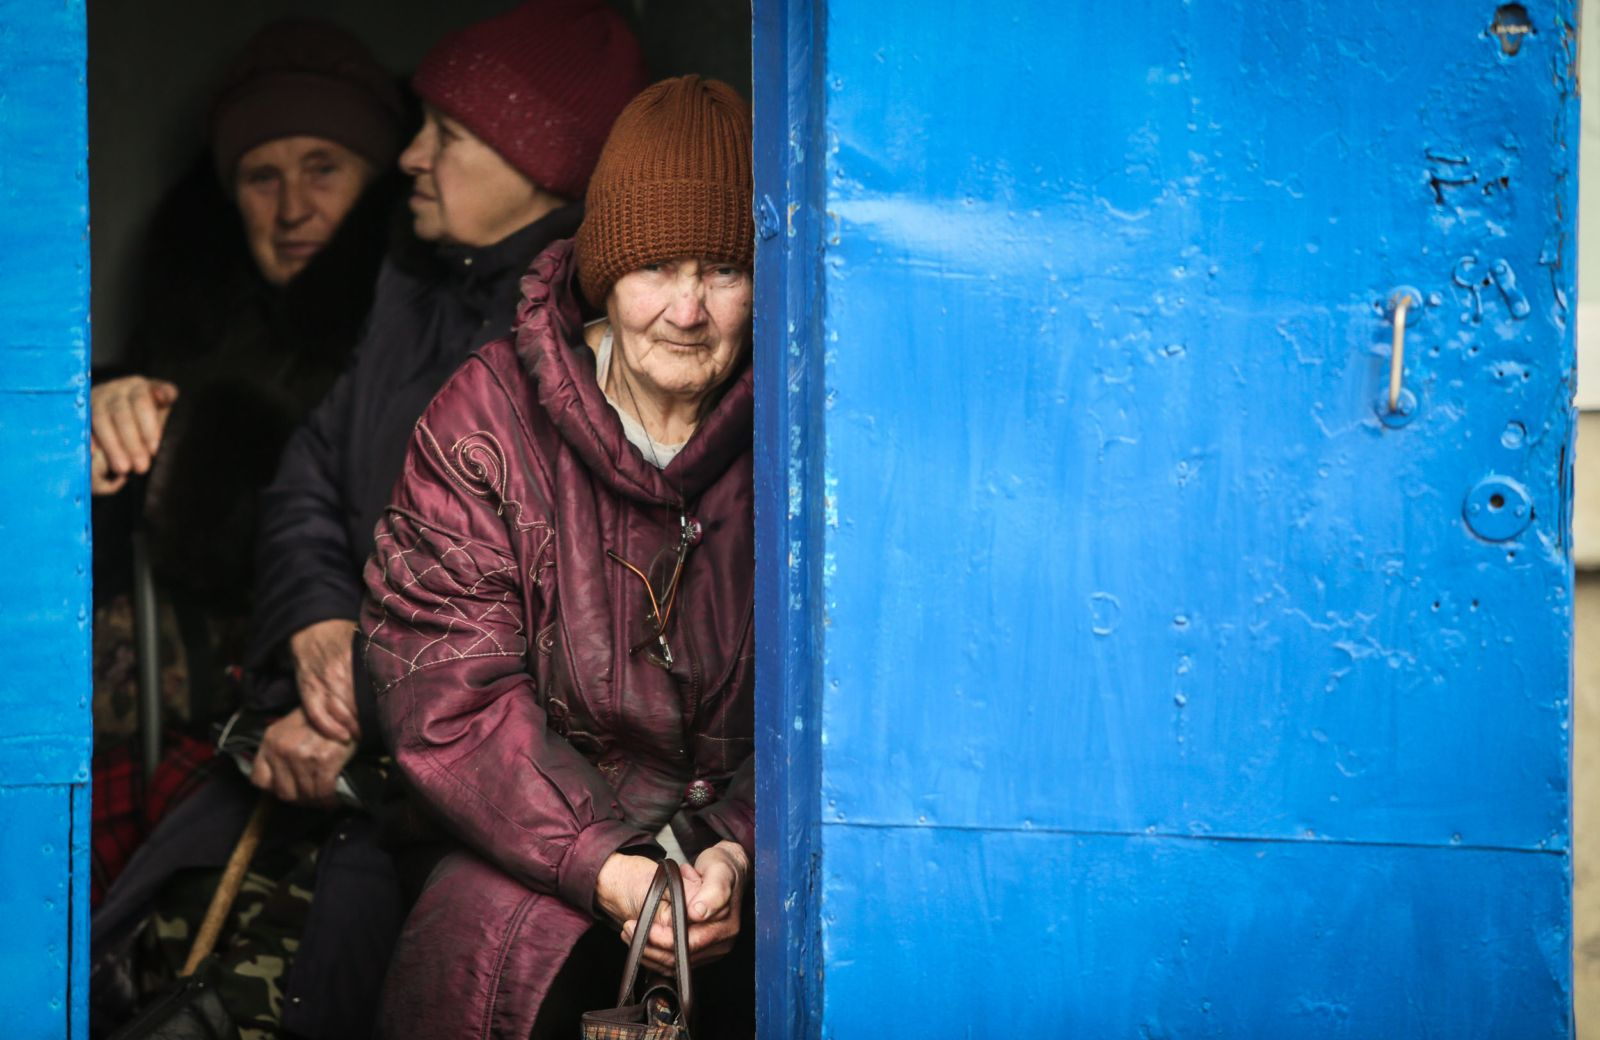 Abandoned, forgotten residents of Zolote take daily risks living at war front.